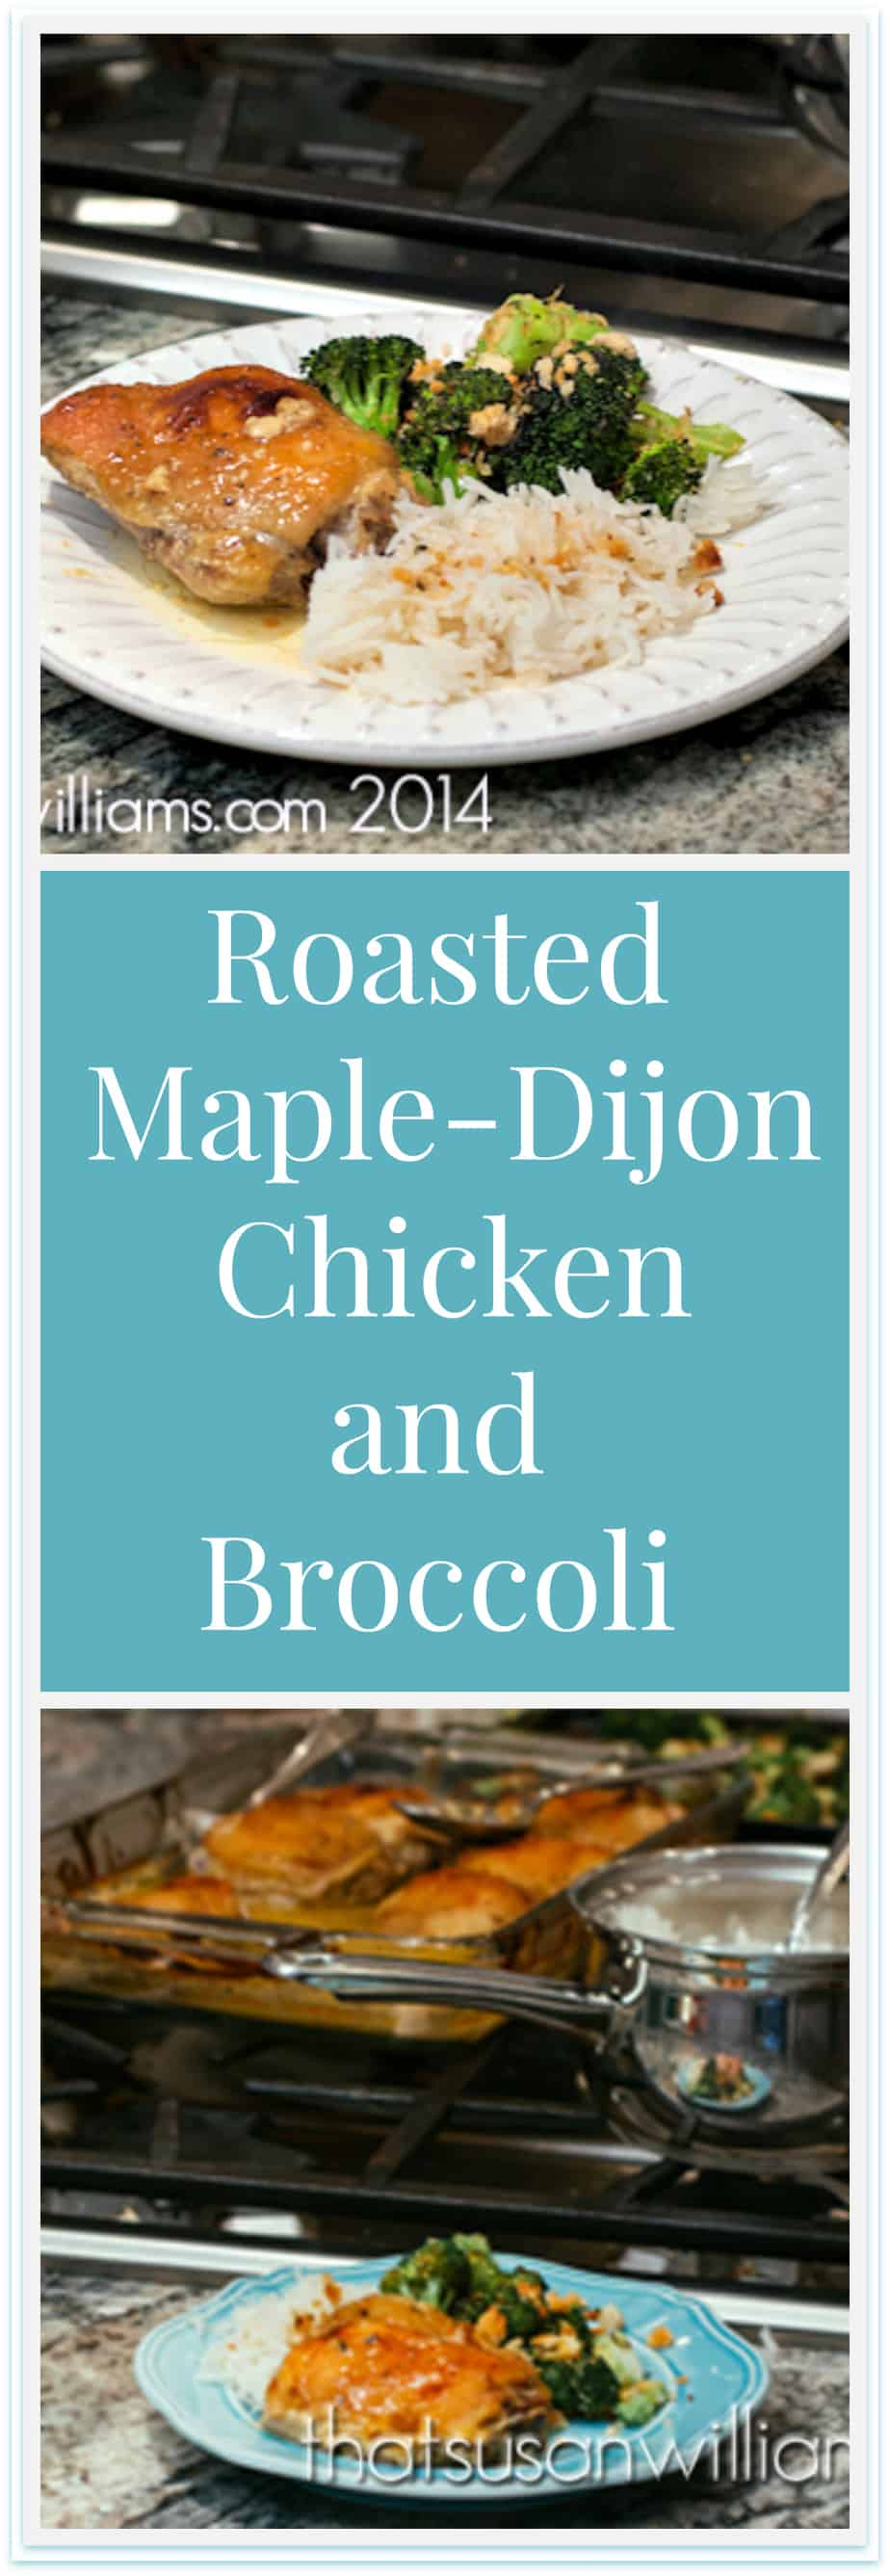 Roasted Maple Dijon Chicken with Roasted Broccoli is a great weeknight meal/Desperation Dinner!